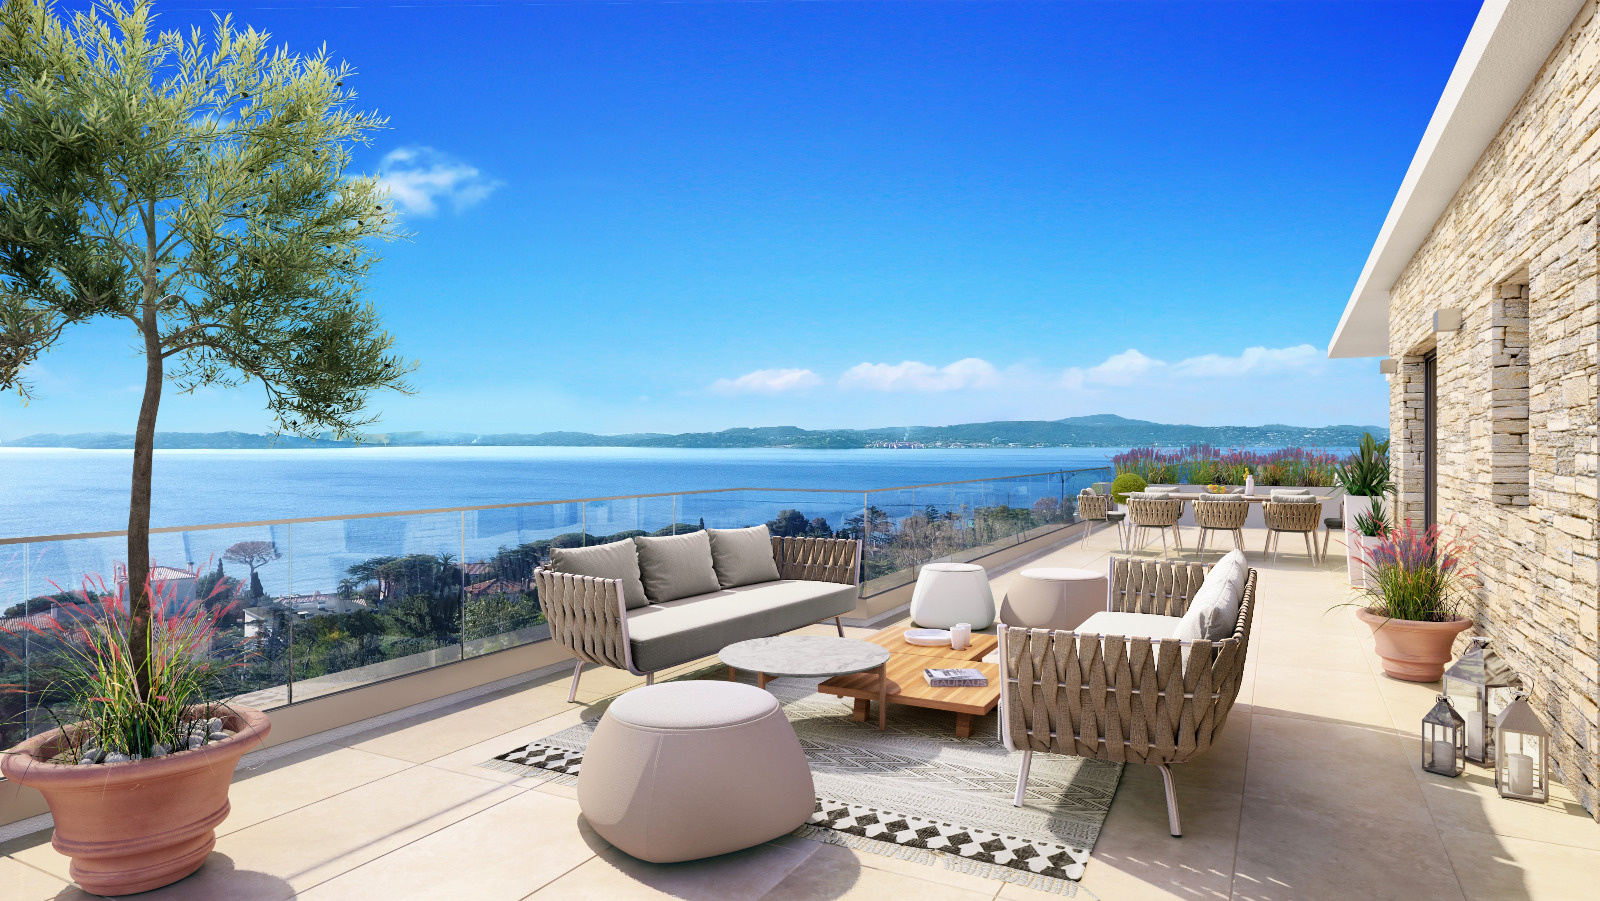 Vema invest immobilier golfe st tropez vente achat for Vue terrasse